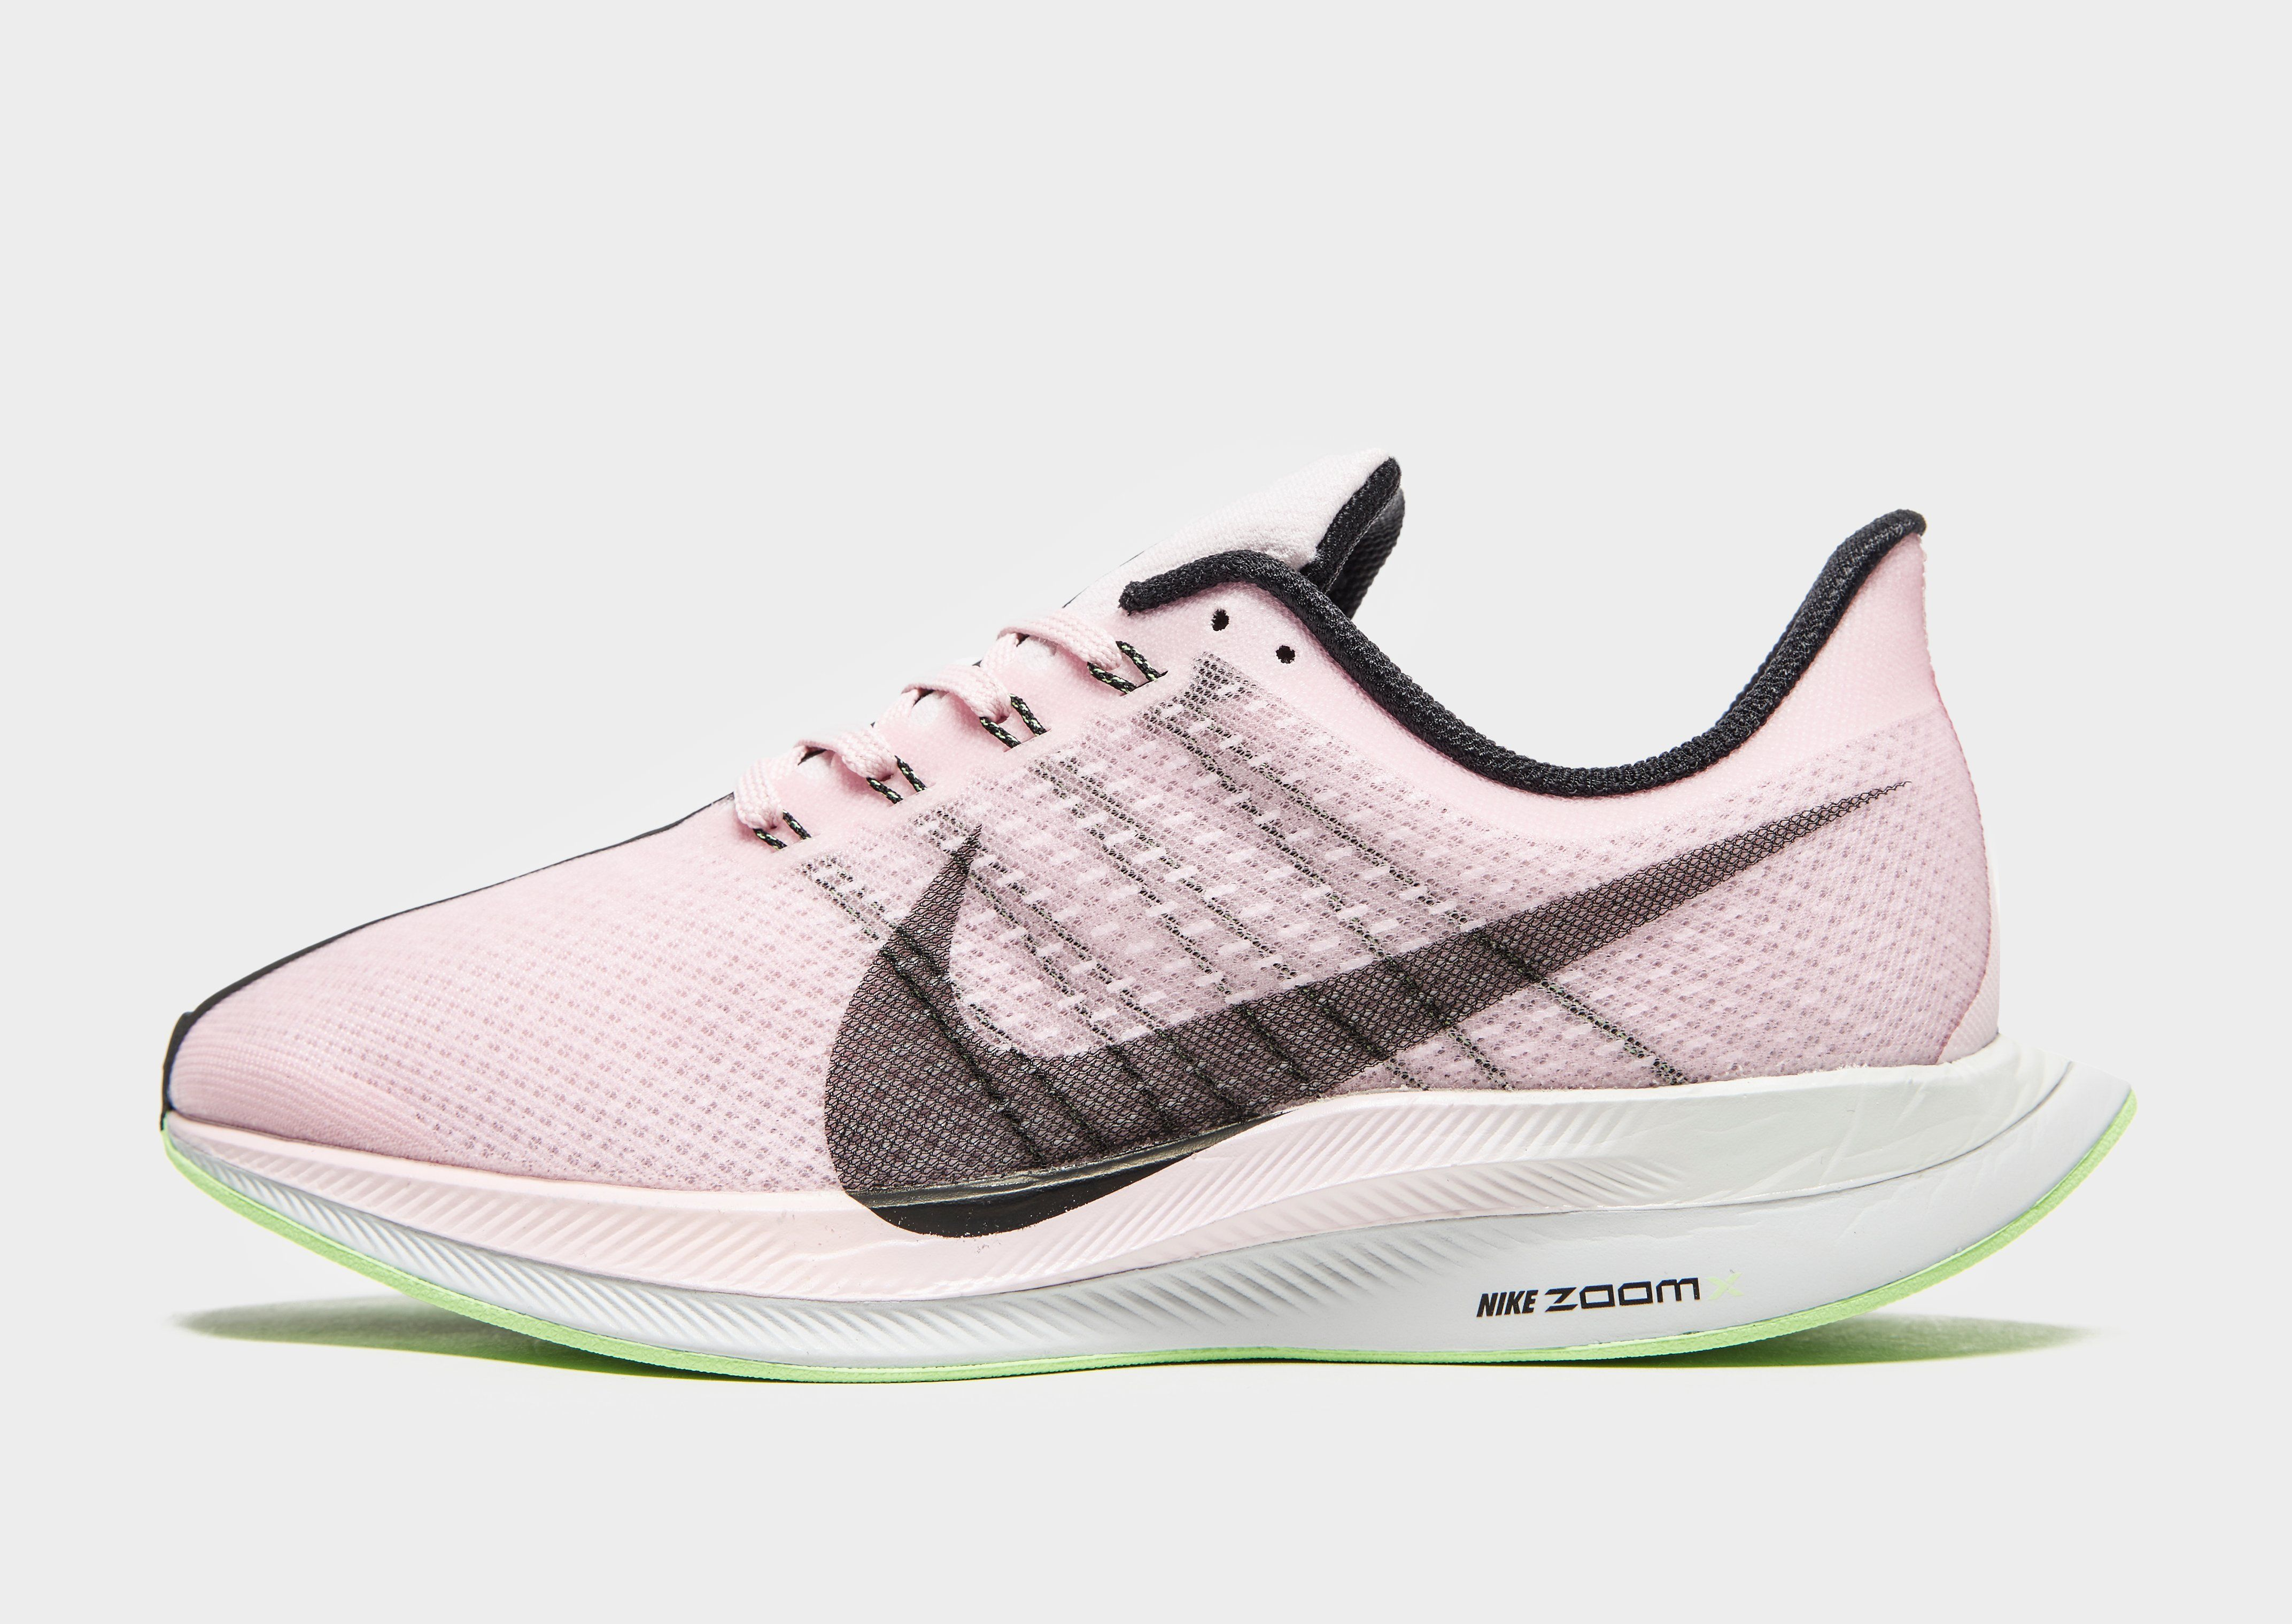 ffa0735c8c6d6 Nike Air Zoom Pegasus 35 Turbo Women s